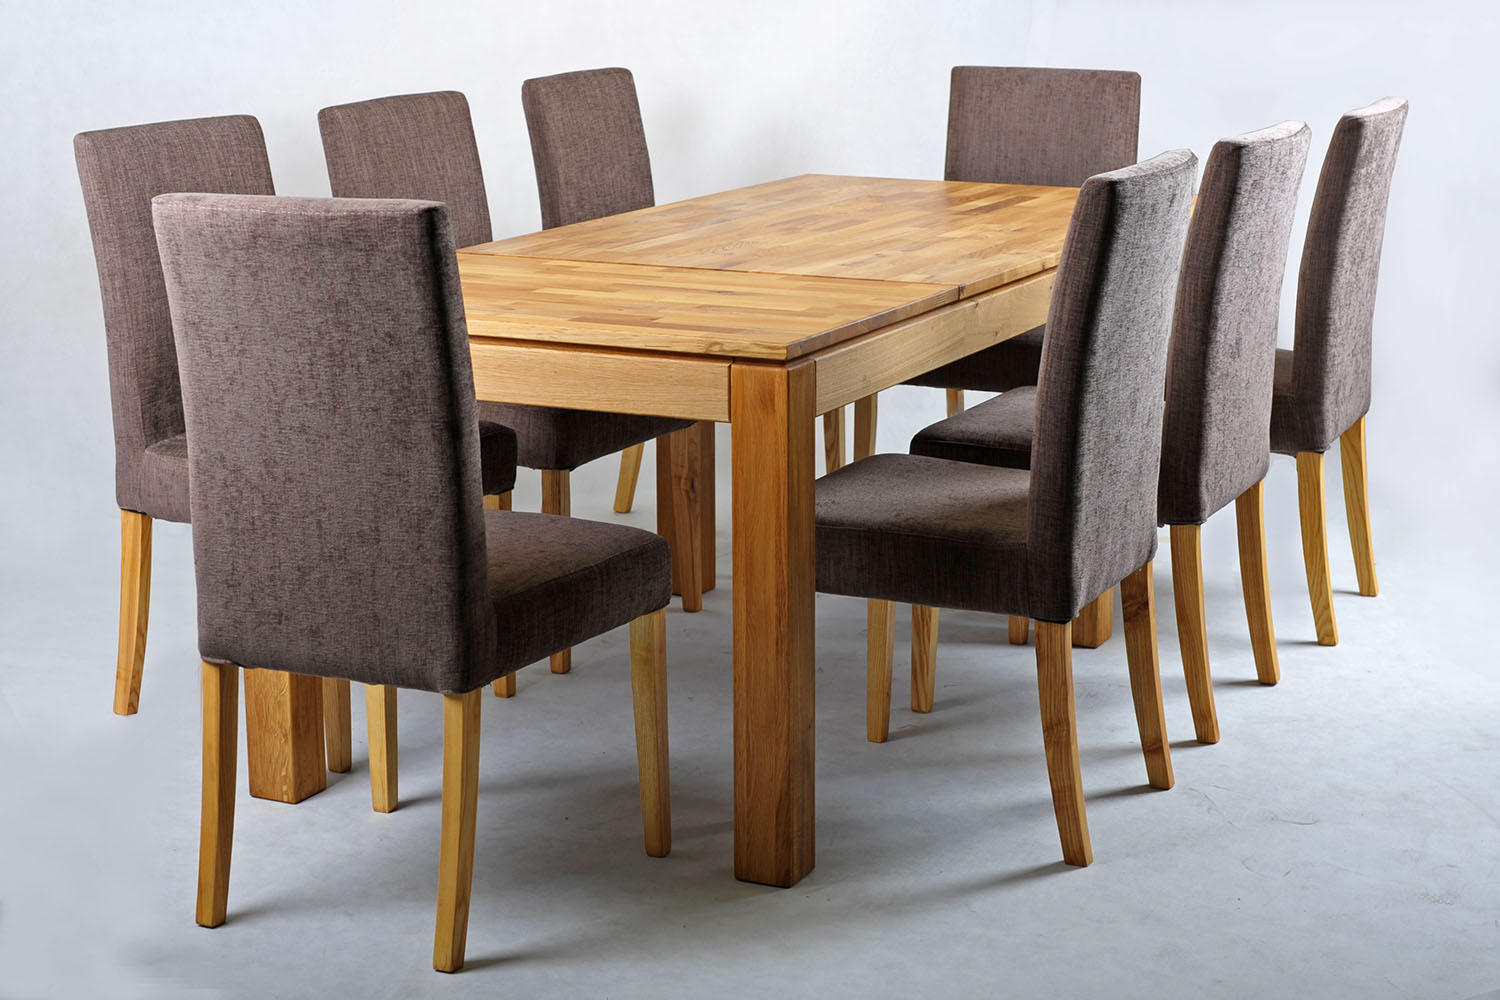 dining tables chairs photo - 1